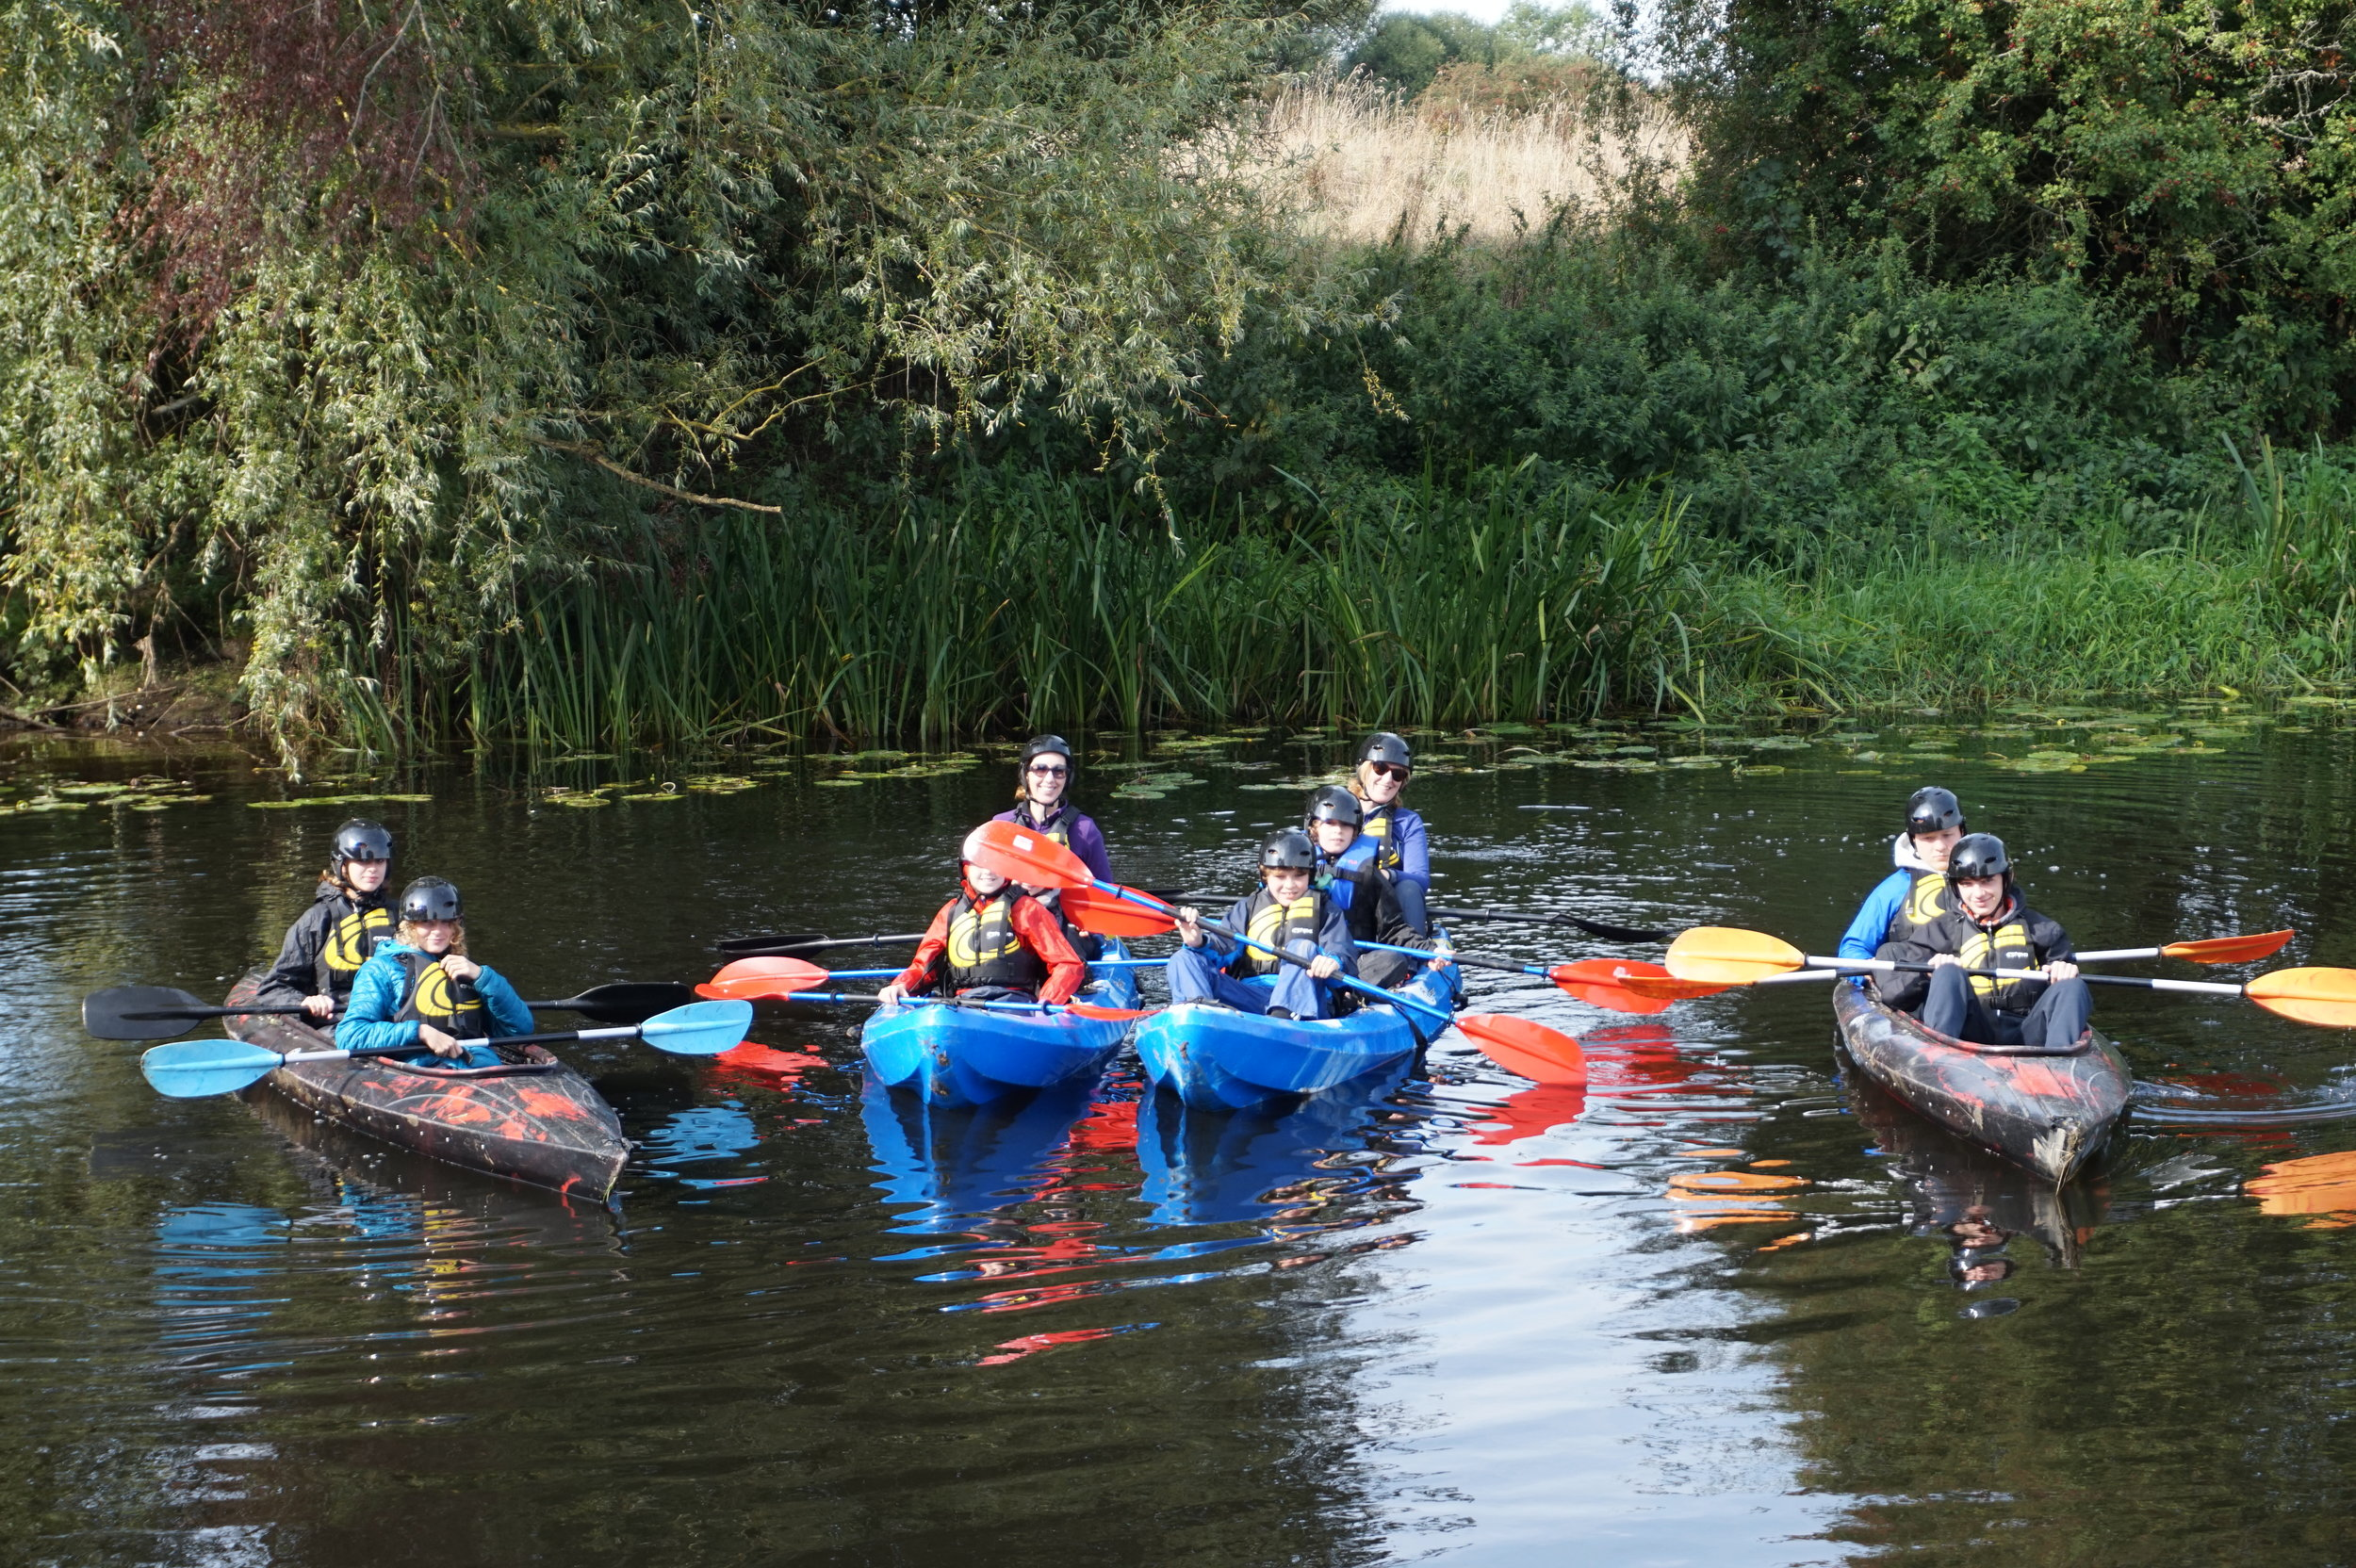 """We have just returned from a 2 day 2 night camping and kayaking trip and feel like we've totally switched off from the real world for a few days!"" - - Vanessa Carthy, Birmingham"